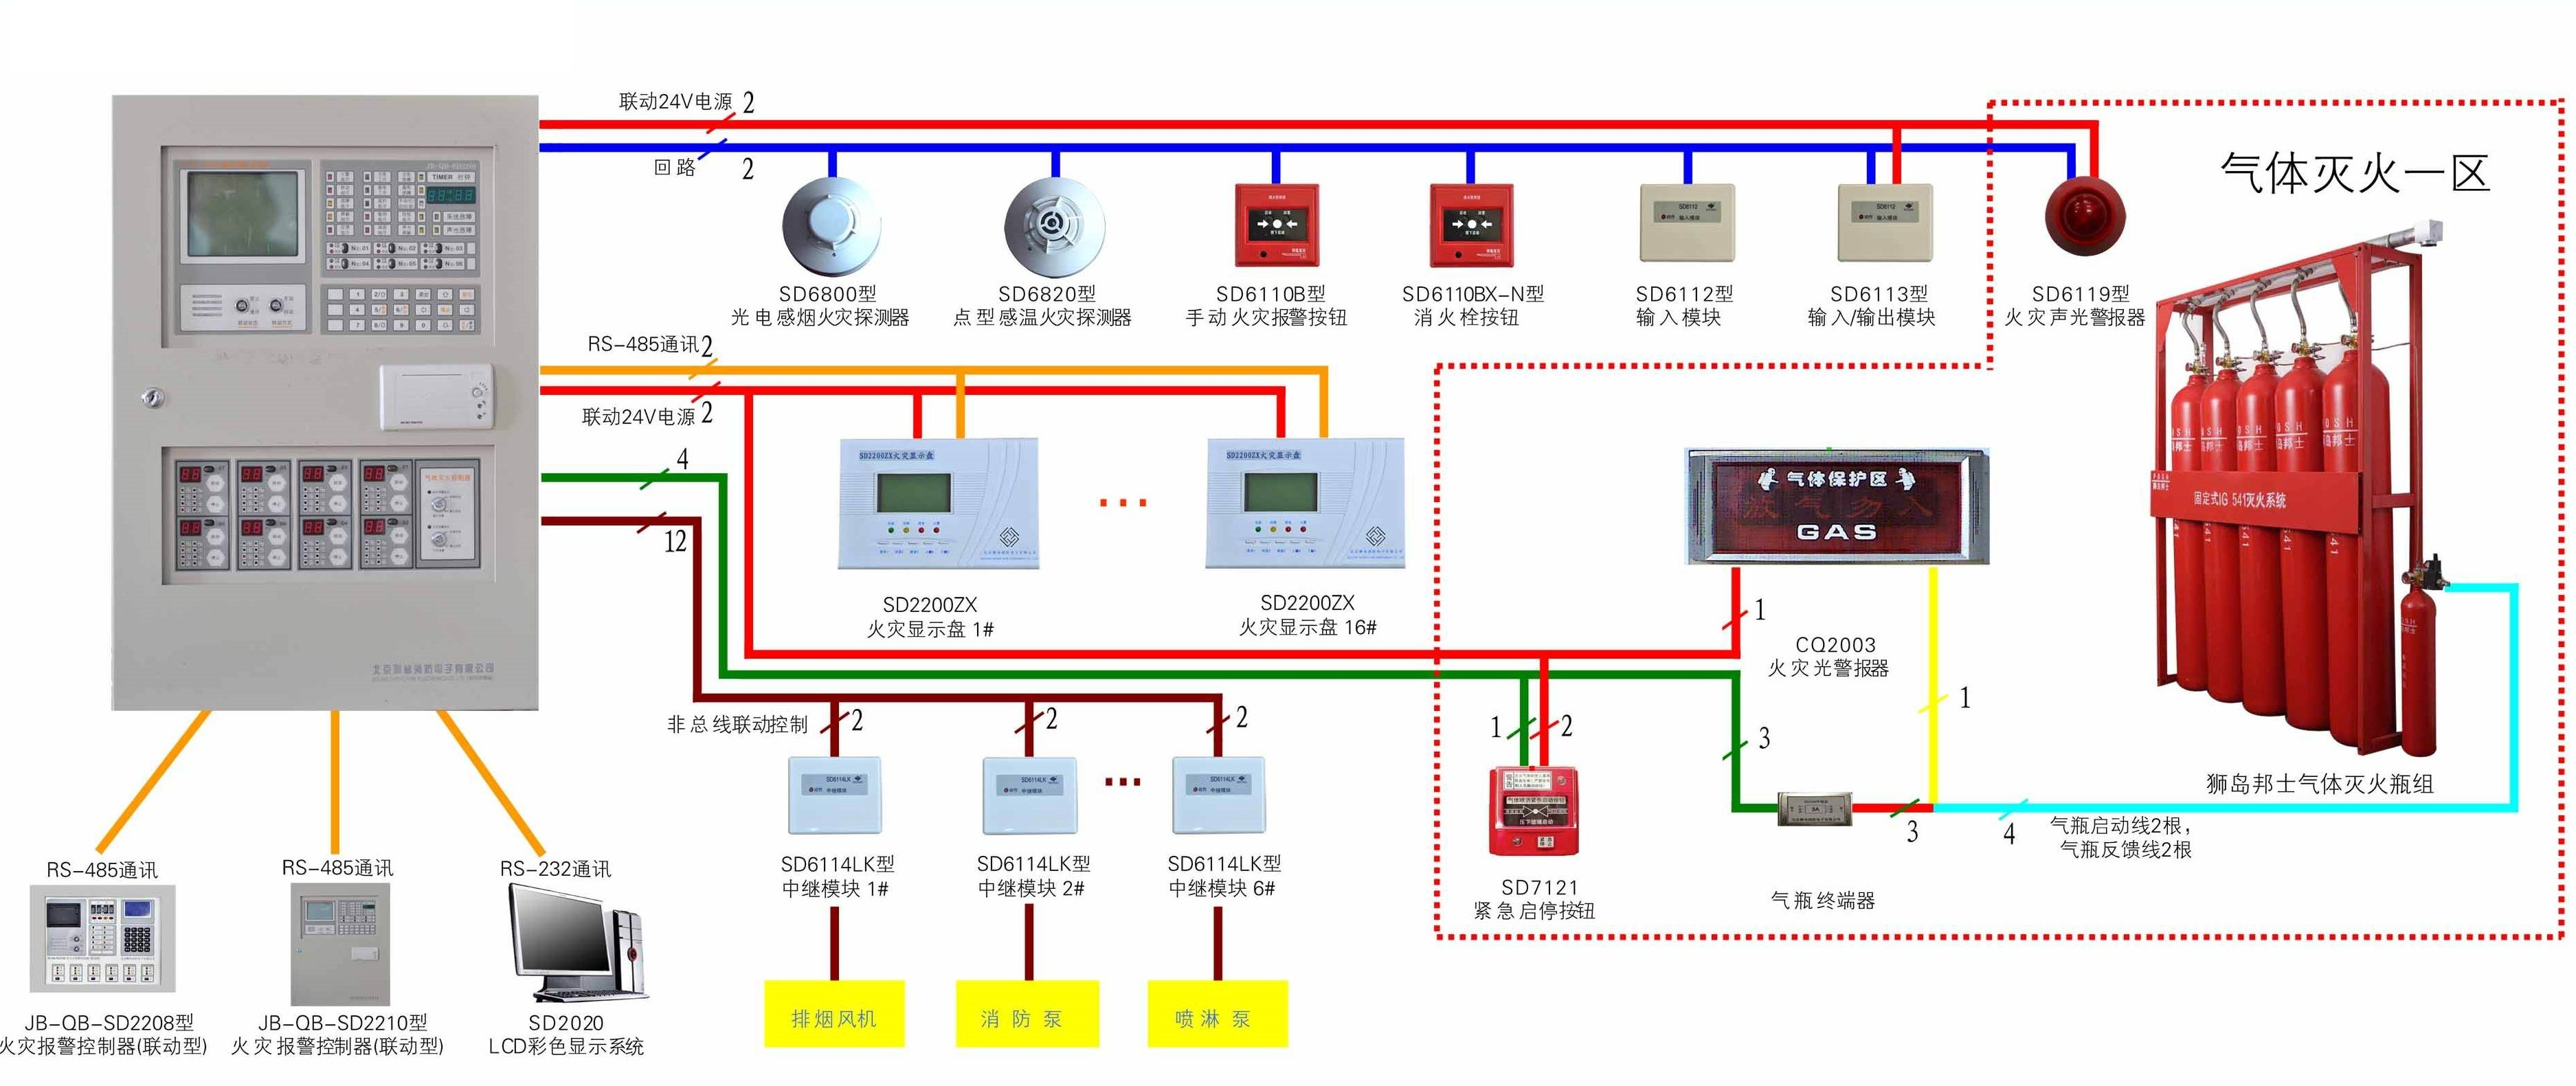 hight resolution of ow to start a fire security project from laying the pipeline to program fire detectors and debugging fire security circuit we guide you how to install the